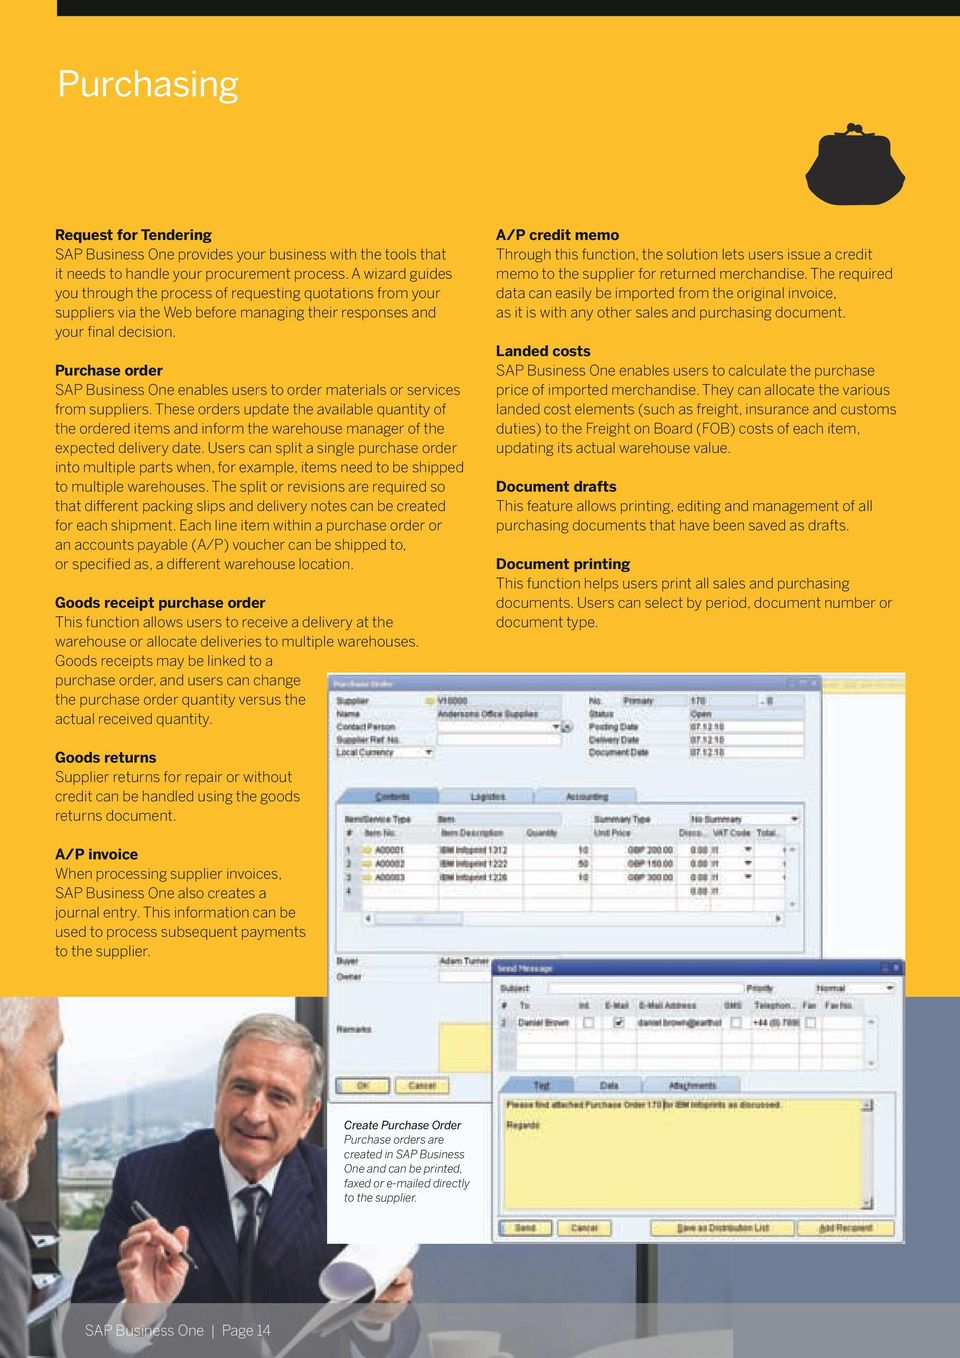 Purchase order SAP Business One enables users to order materials or services from suppliers.